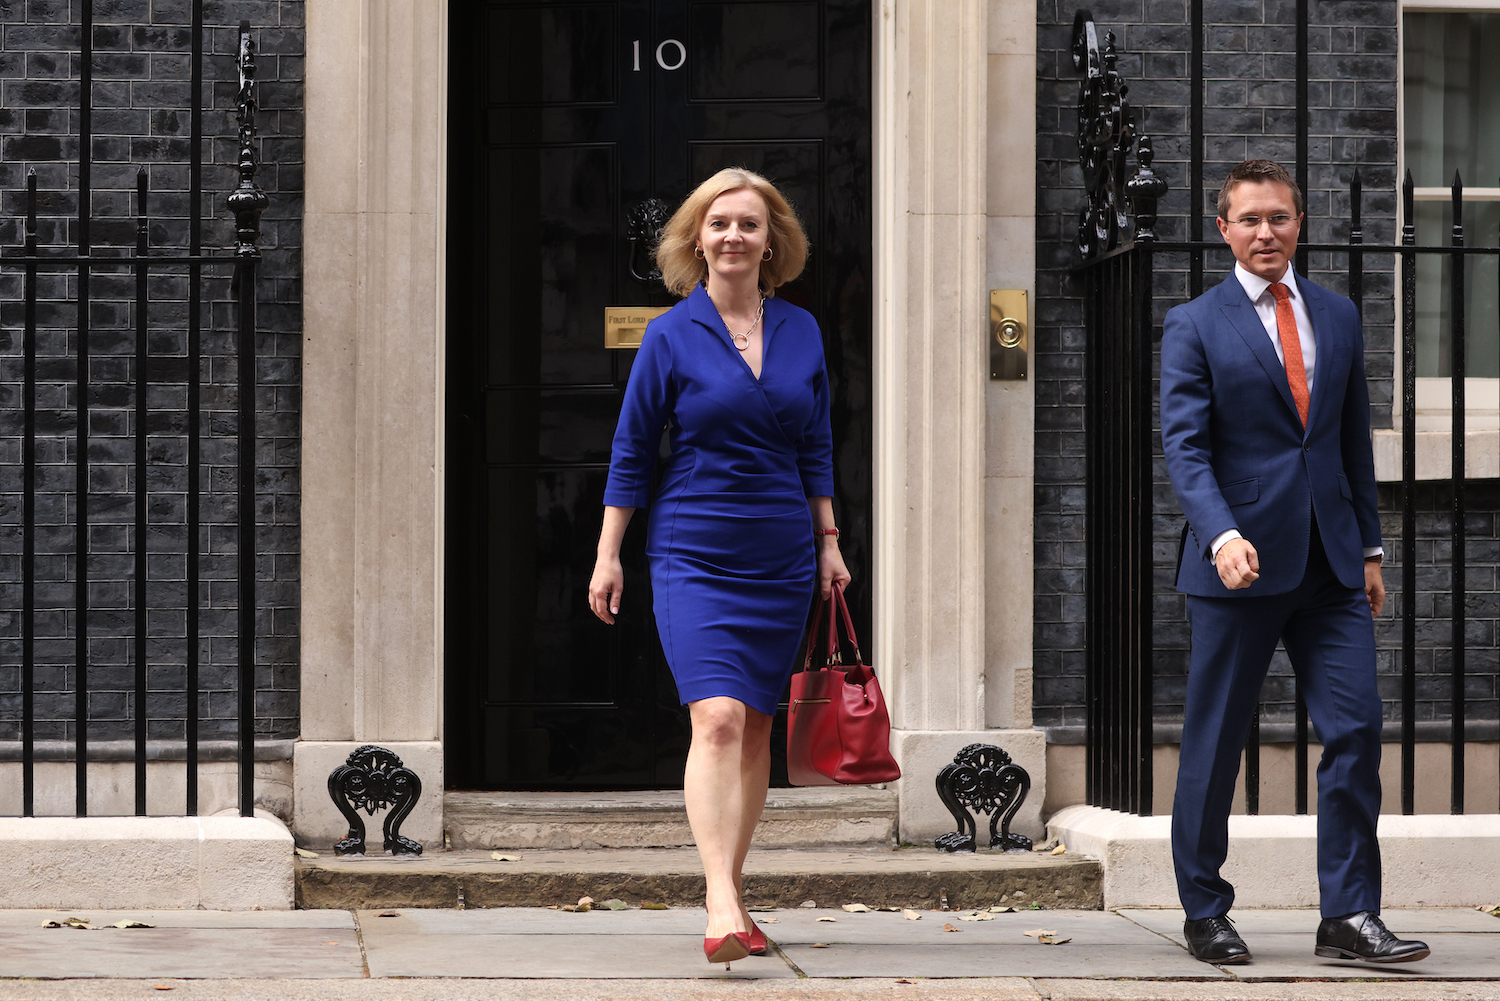 Liz Truss, recently appointed as the new U.K. foreign secretary leaves 10 Downing Street in London on Sept. 15.